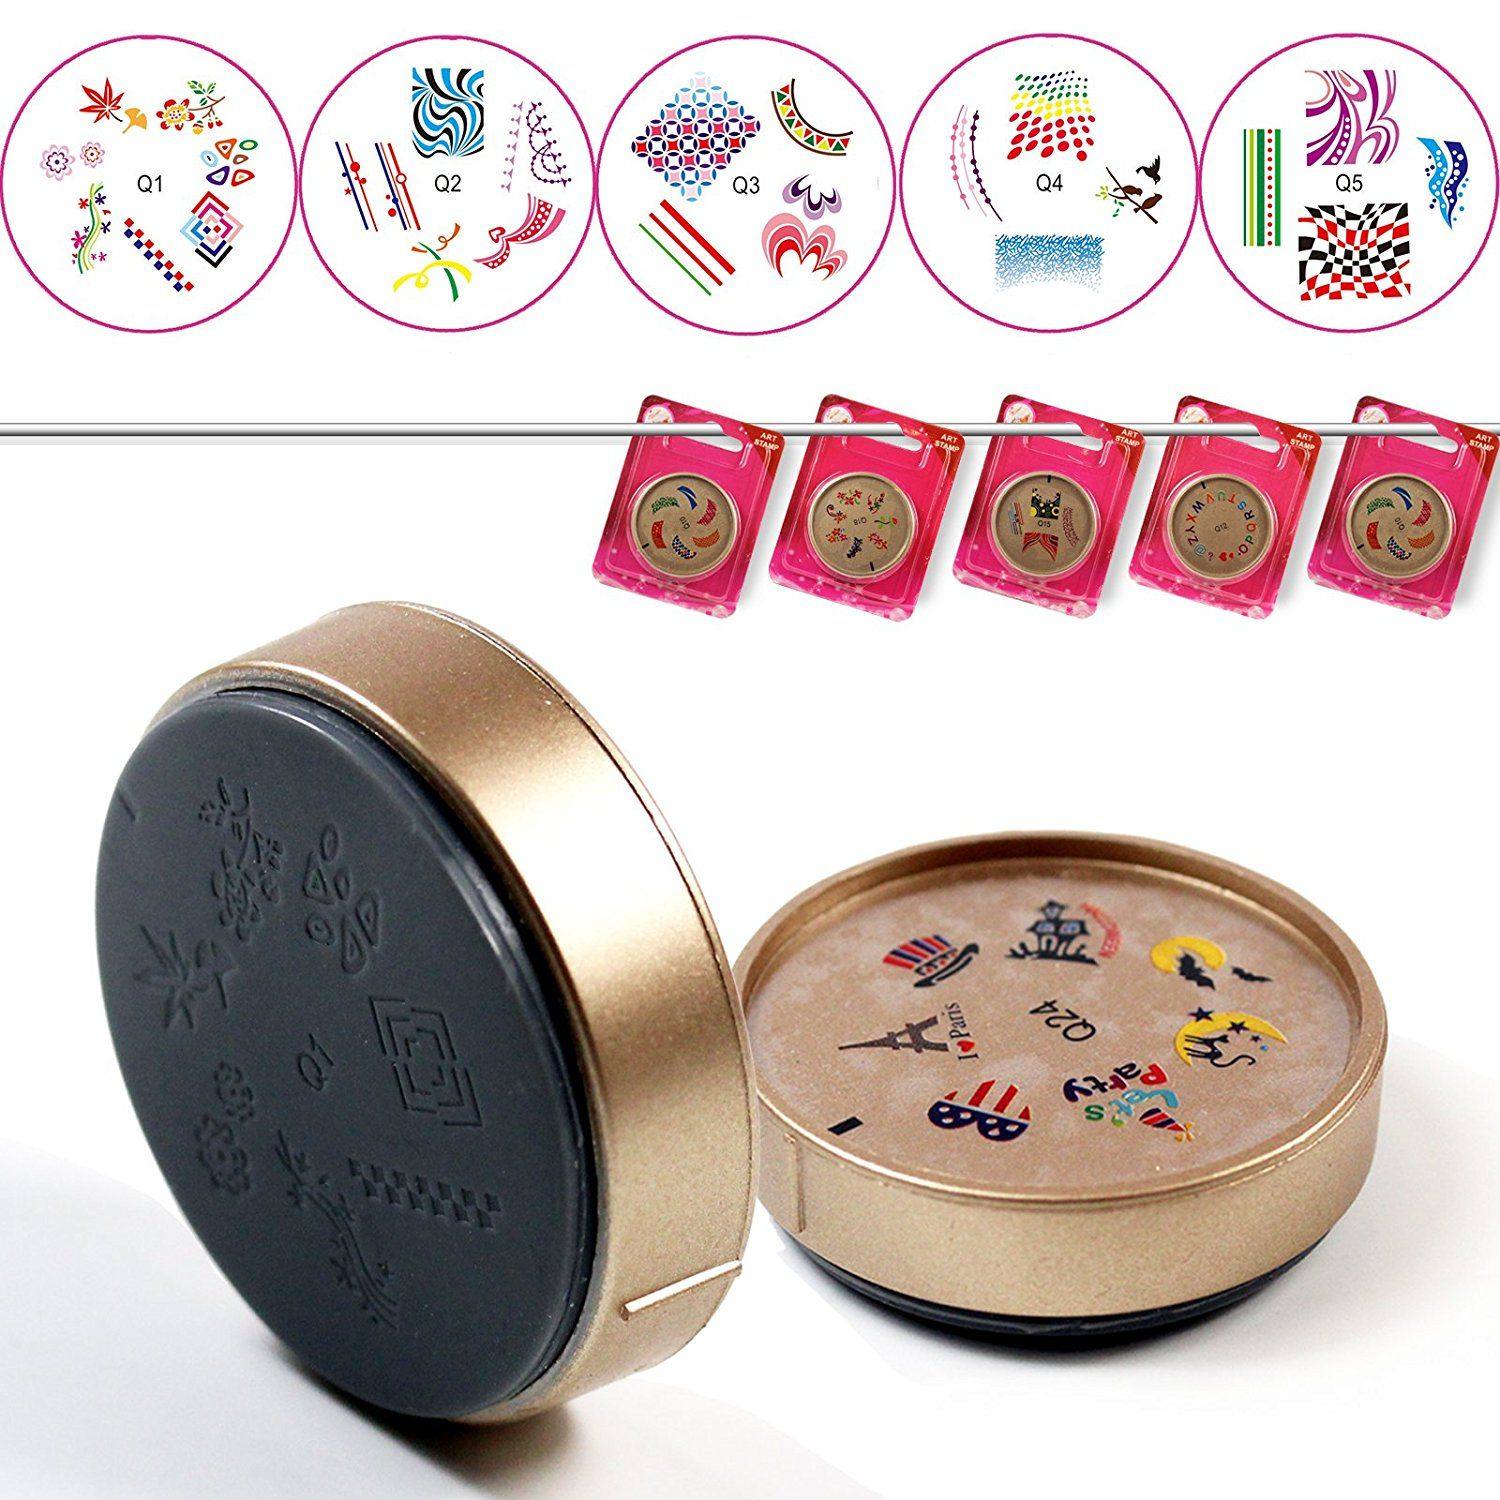 PrefectSummer 5pcs DIY Nail Art Nailart Polish Mix styles Image Stamping Manicure silicone seal Plates -01 *** More info could be found at the image url.